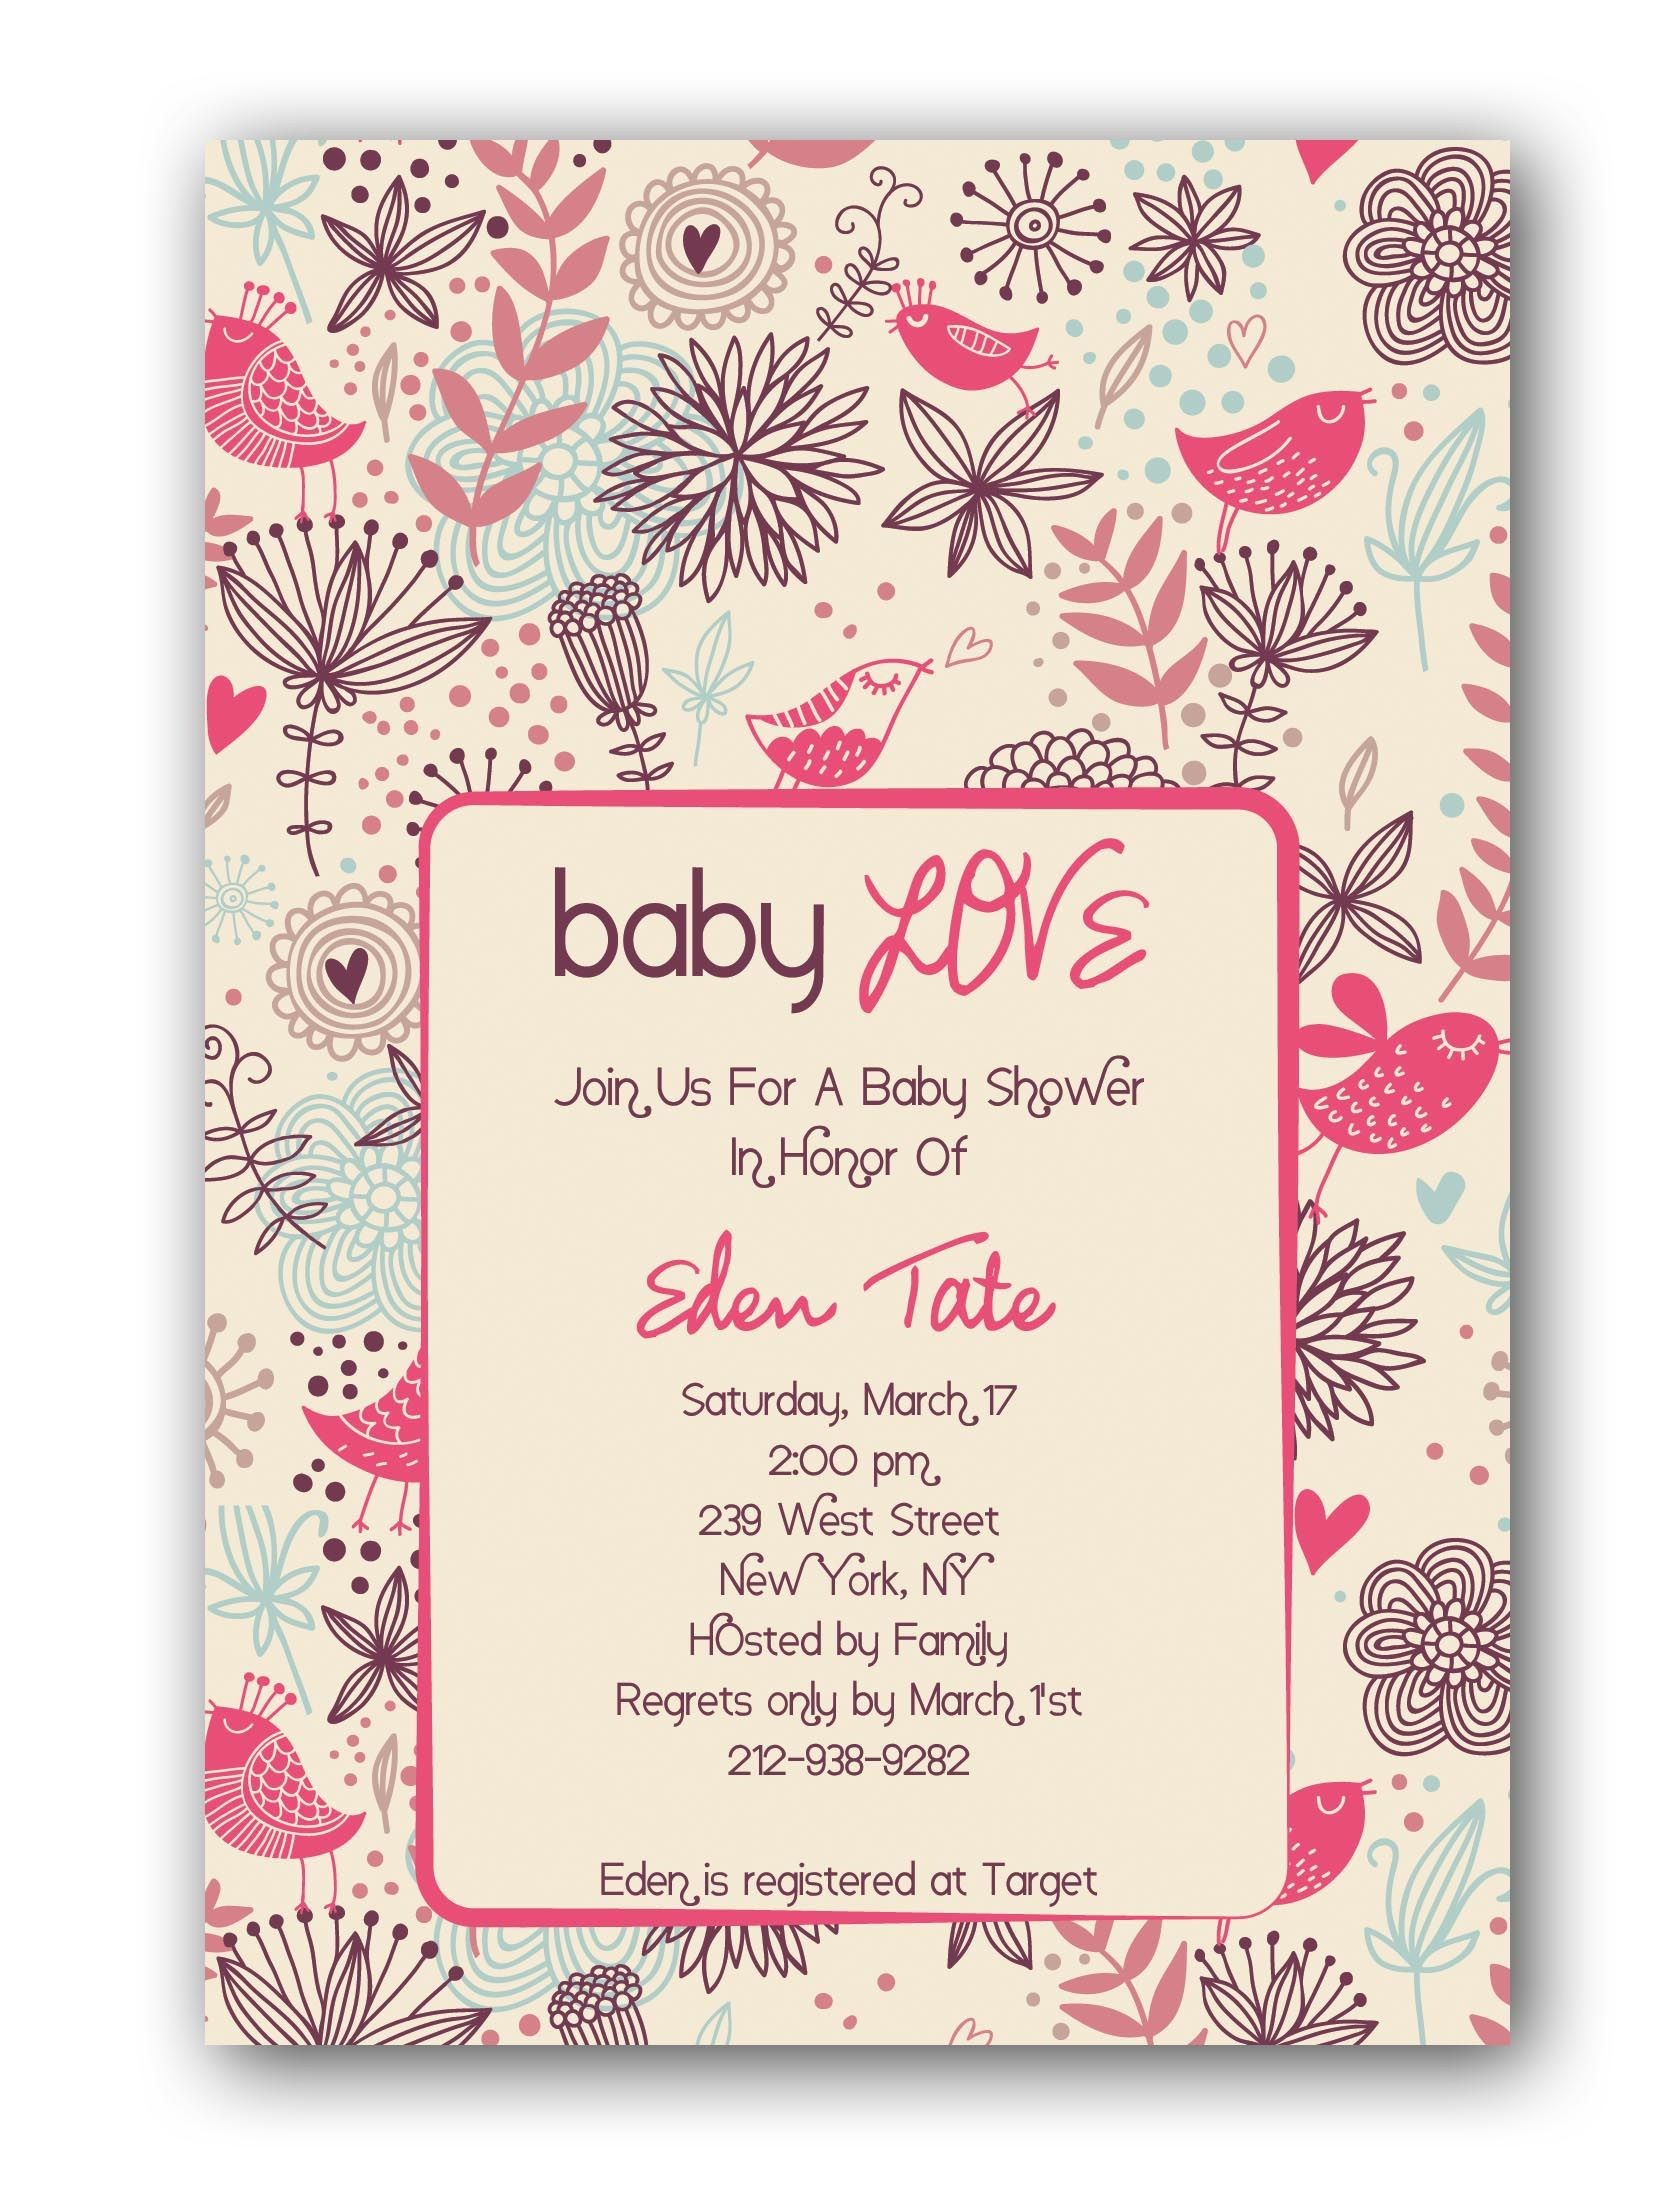 Free Online Baby Shower Invitation Templates Invitations Paper